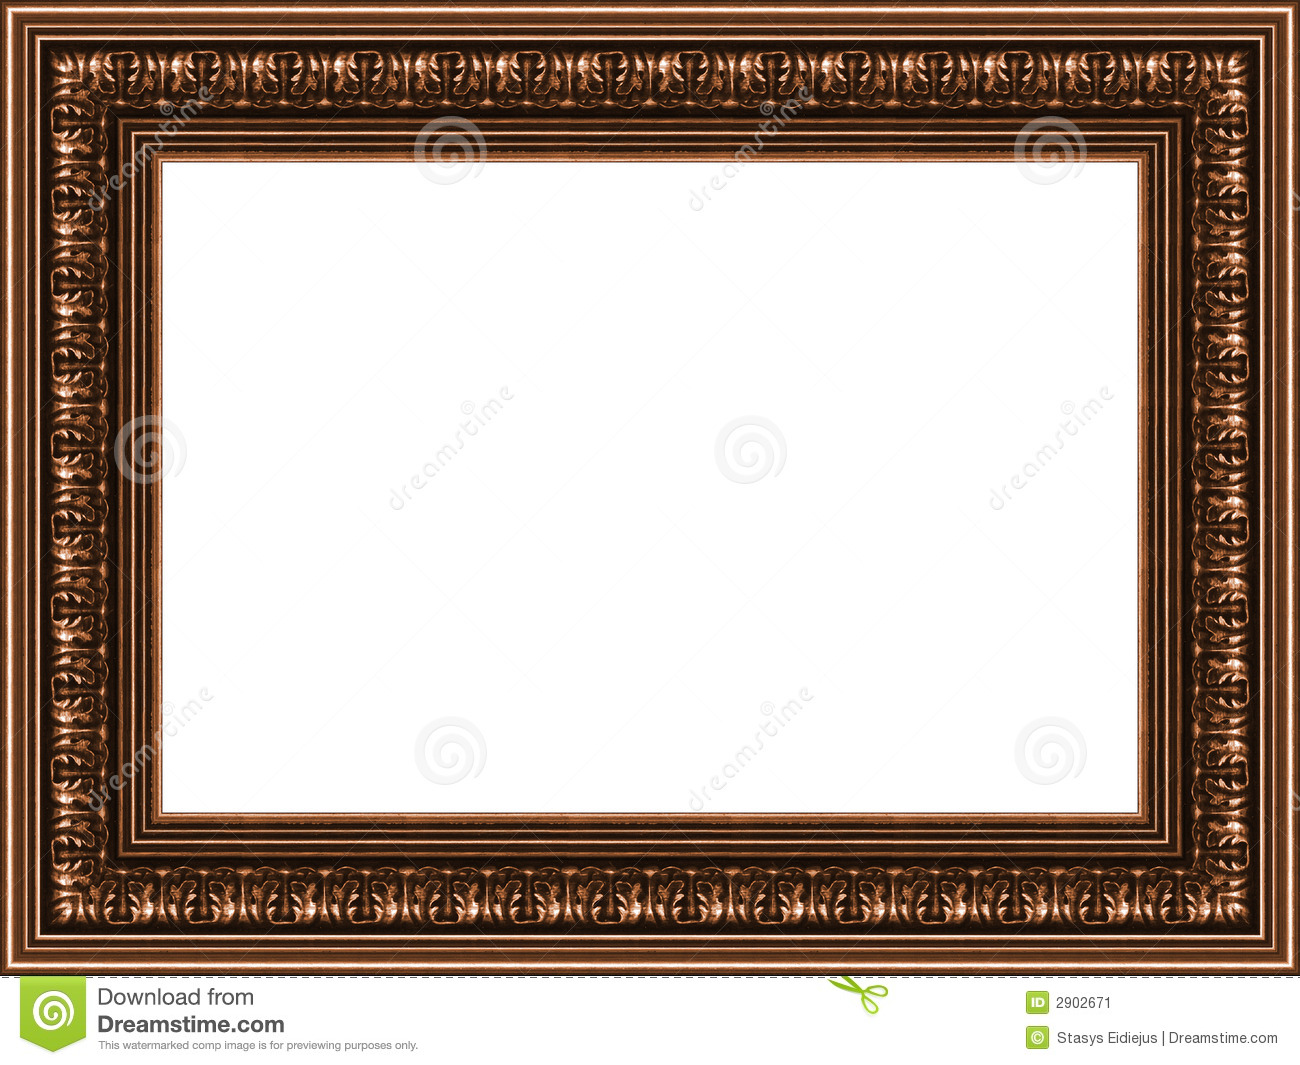 Old wooden frame stock image. Image of framing, background - 2902671